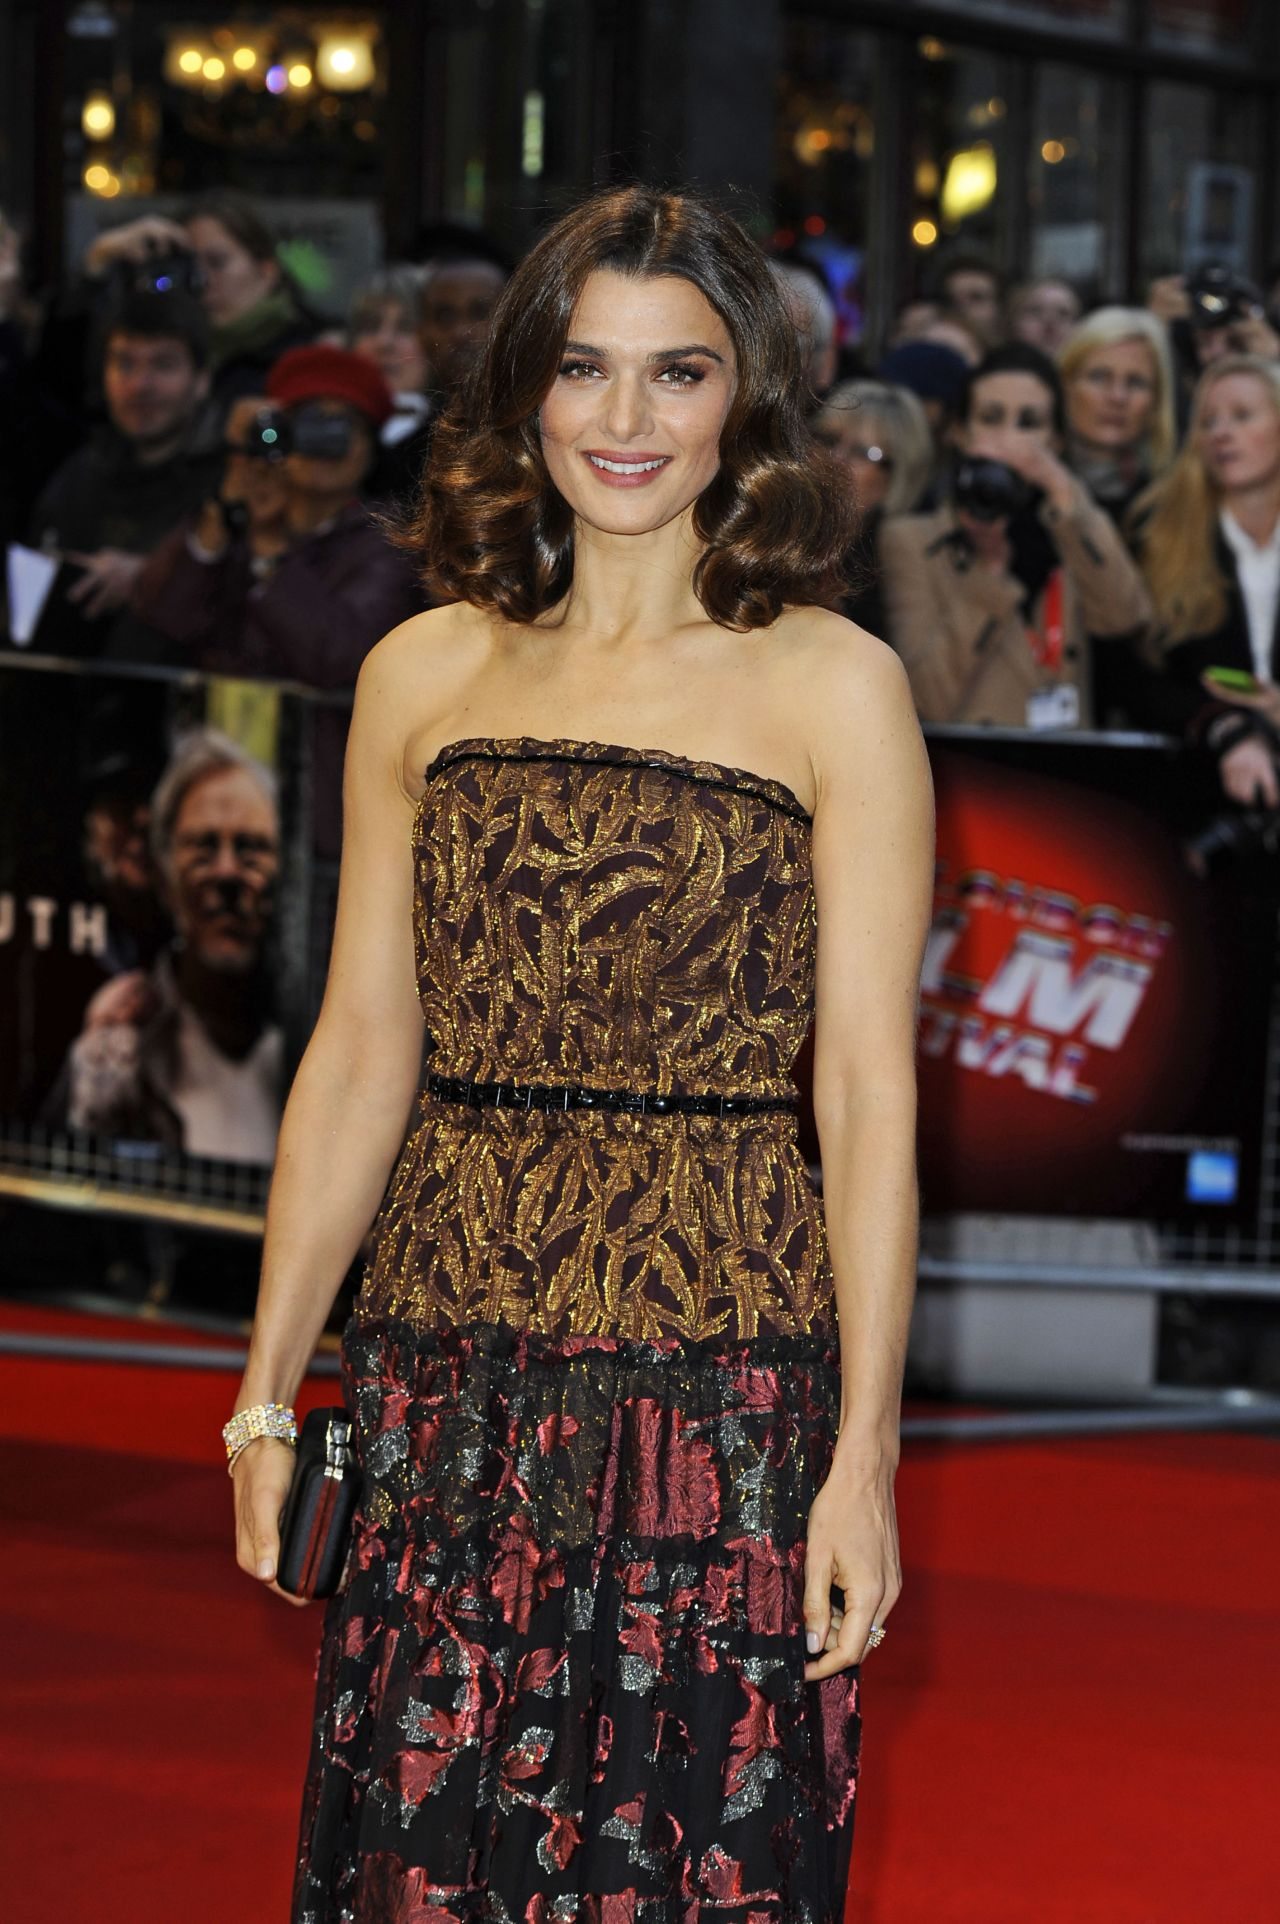 Rachel Weisz Youth Red Carpet At The Bfi London Film